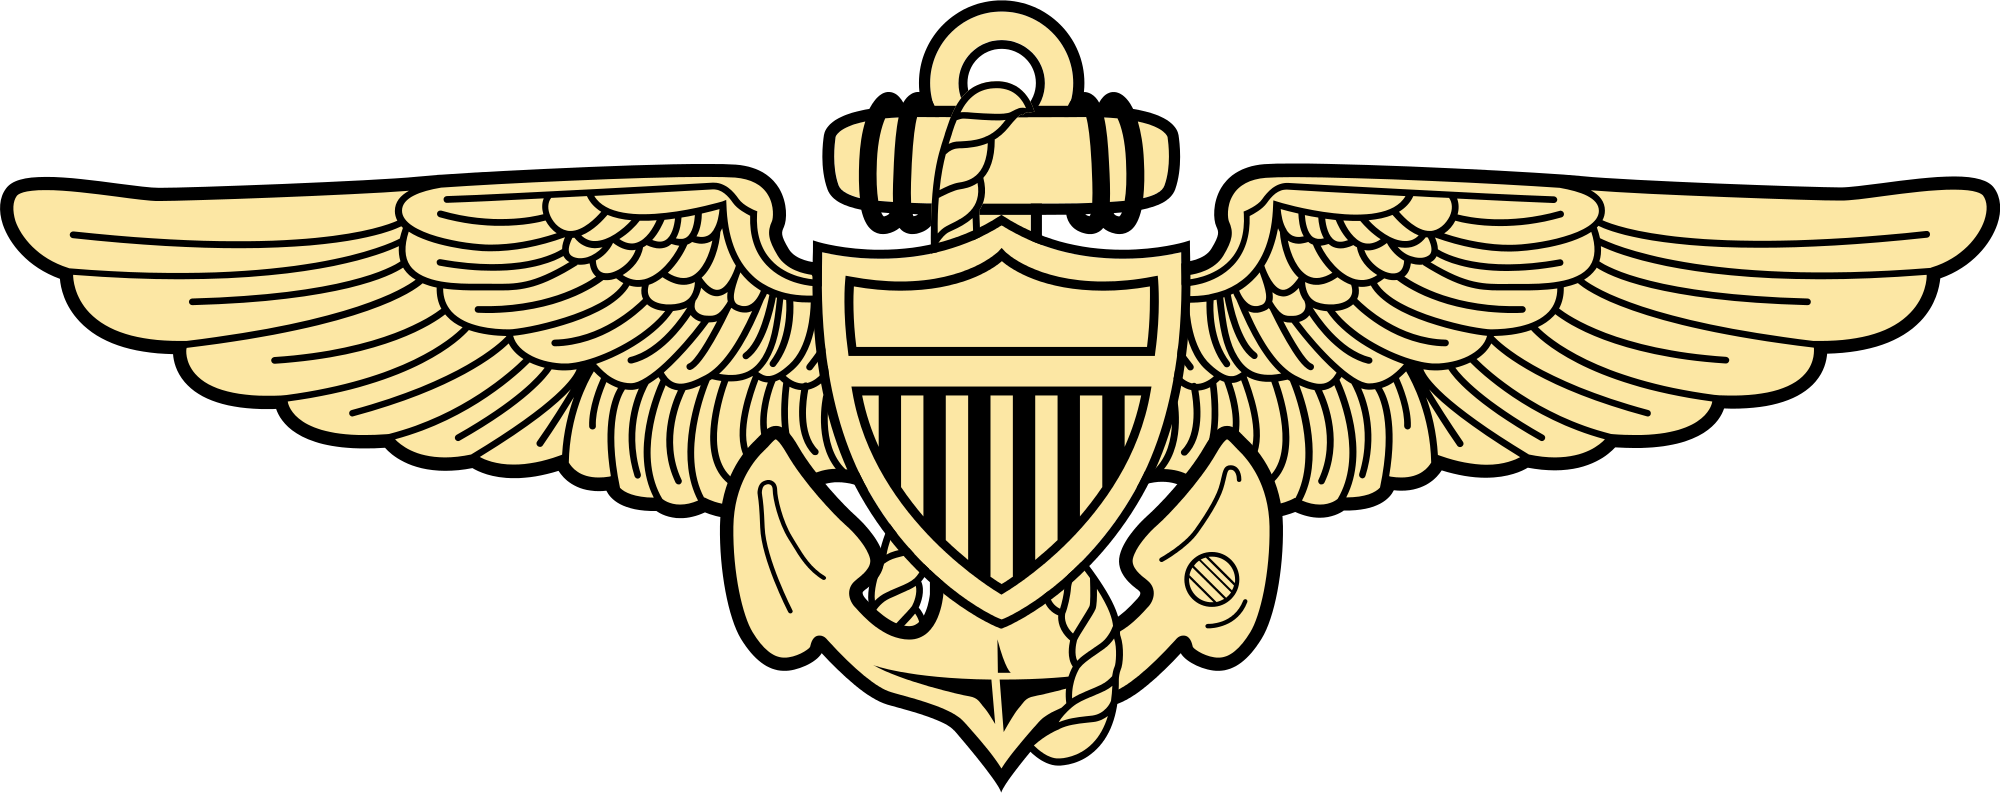 Transparent aviators svg. File naval aviation insignia